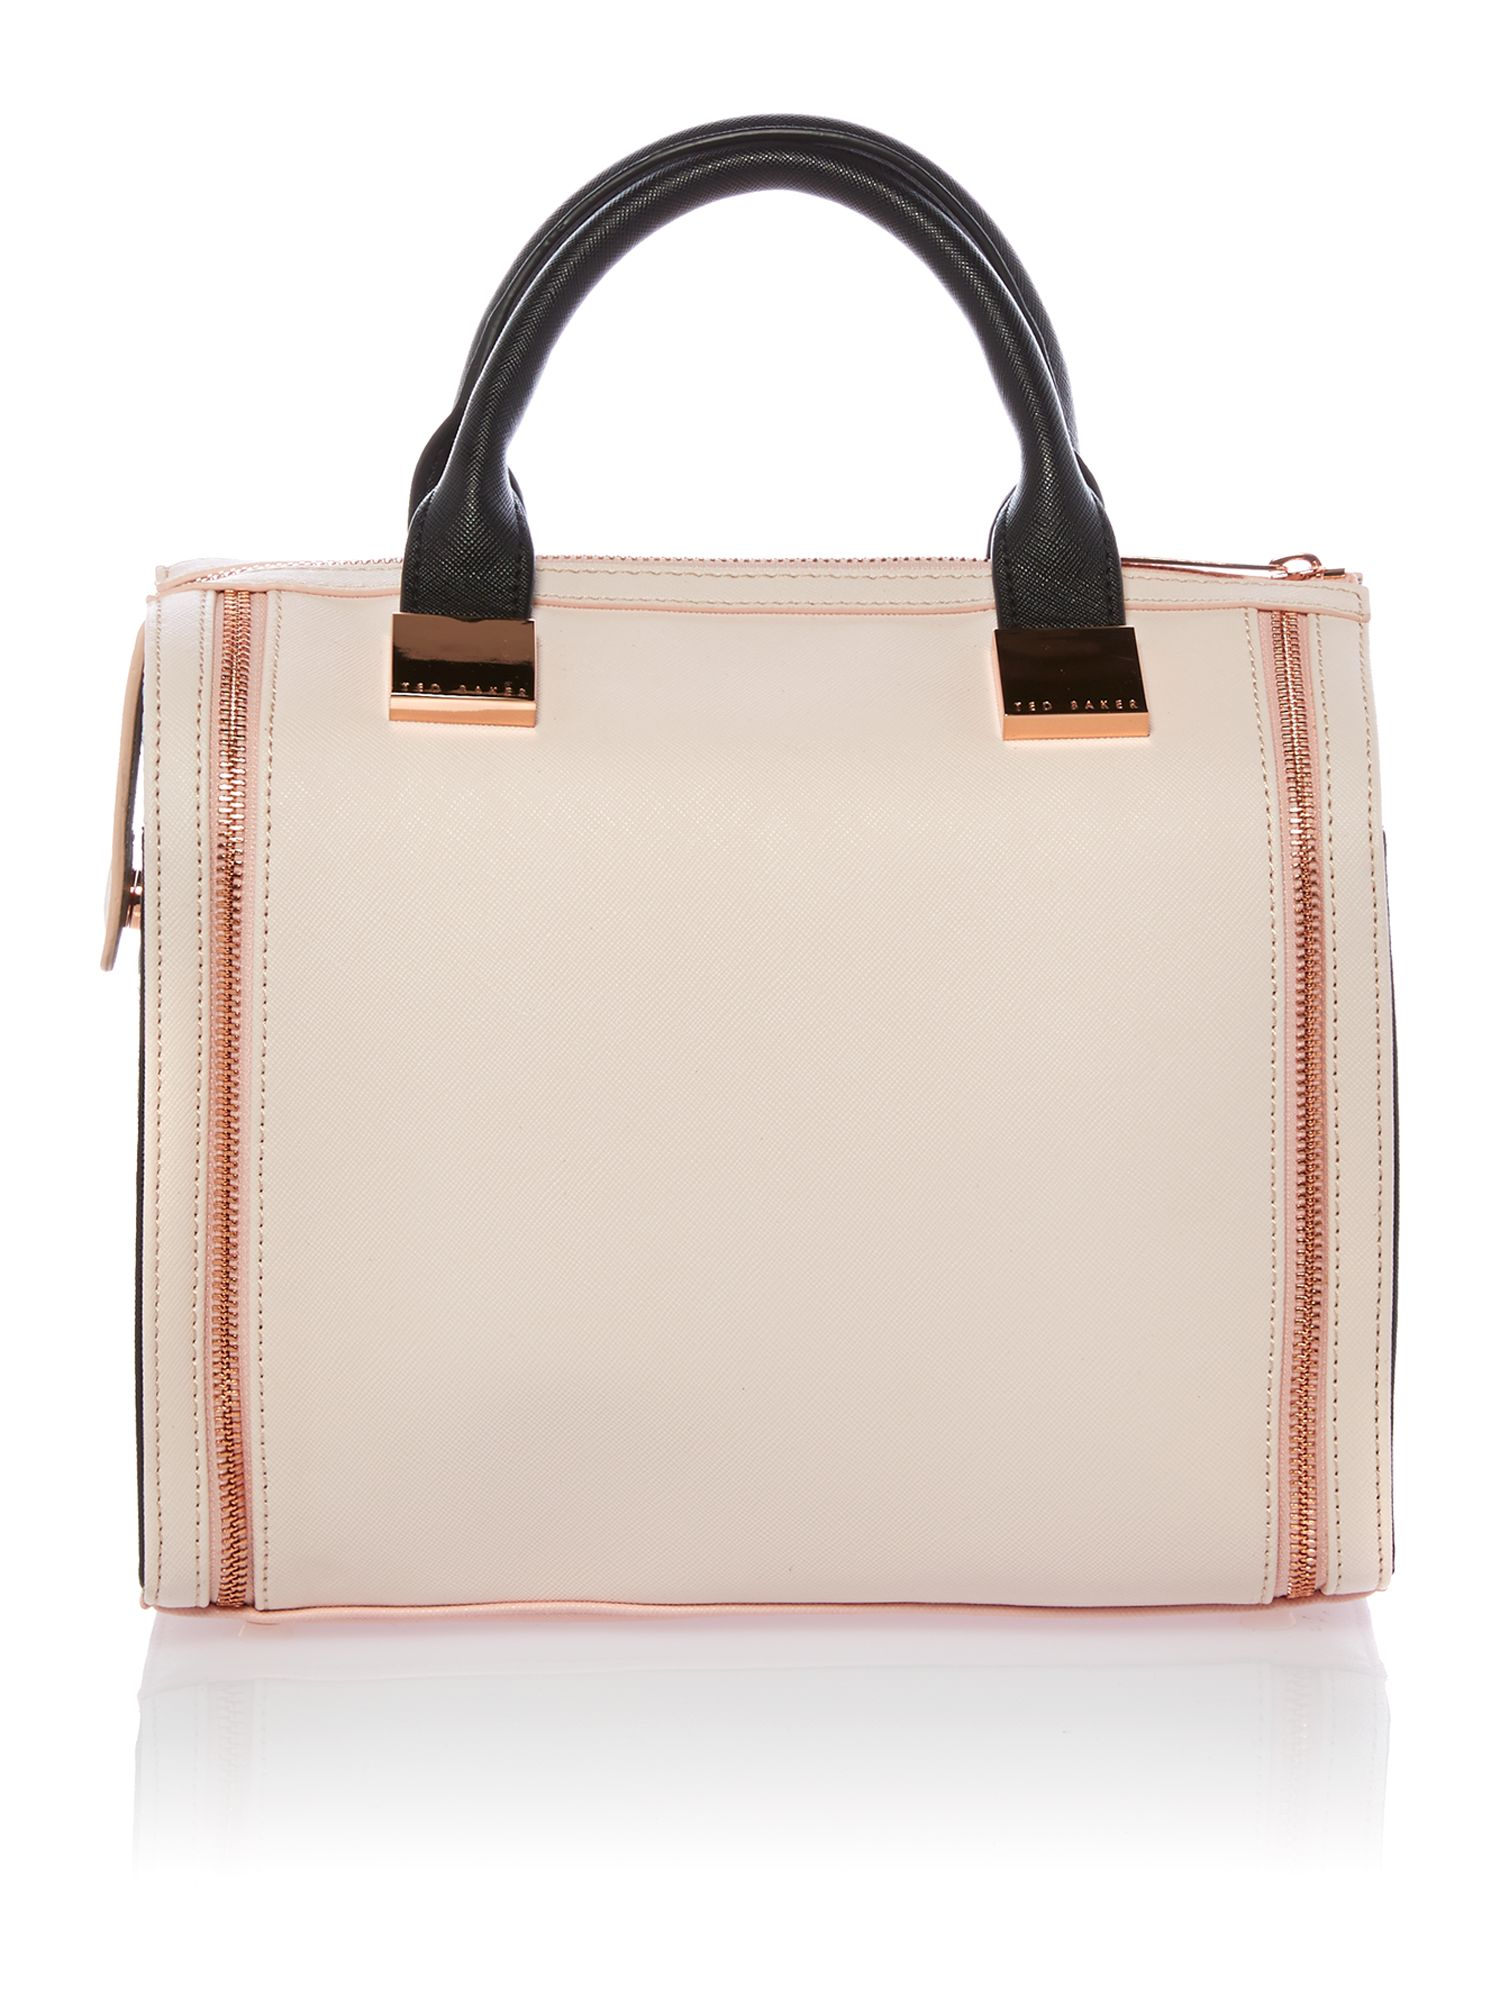 Small black and nude bowling bag